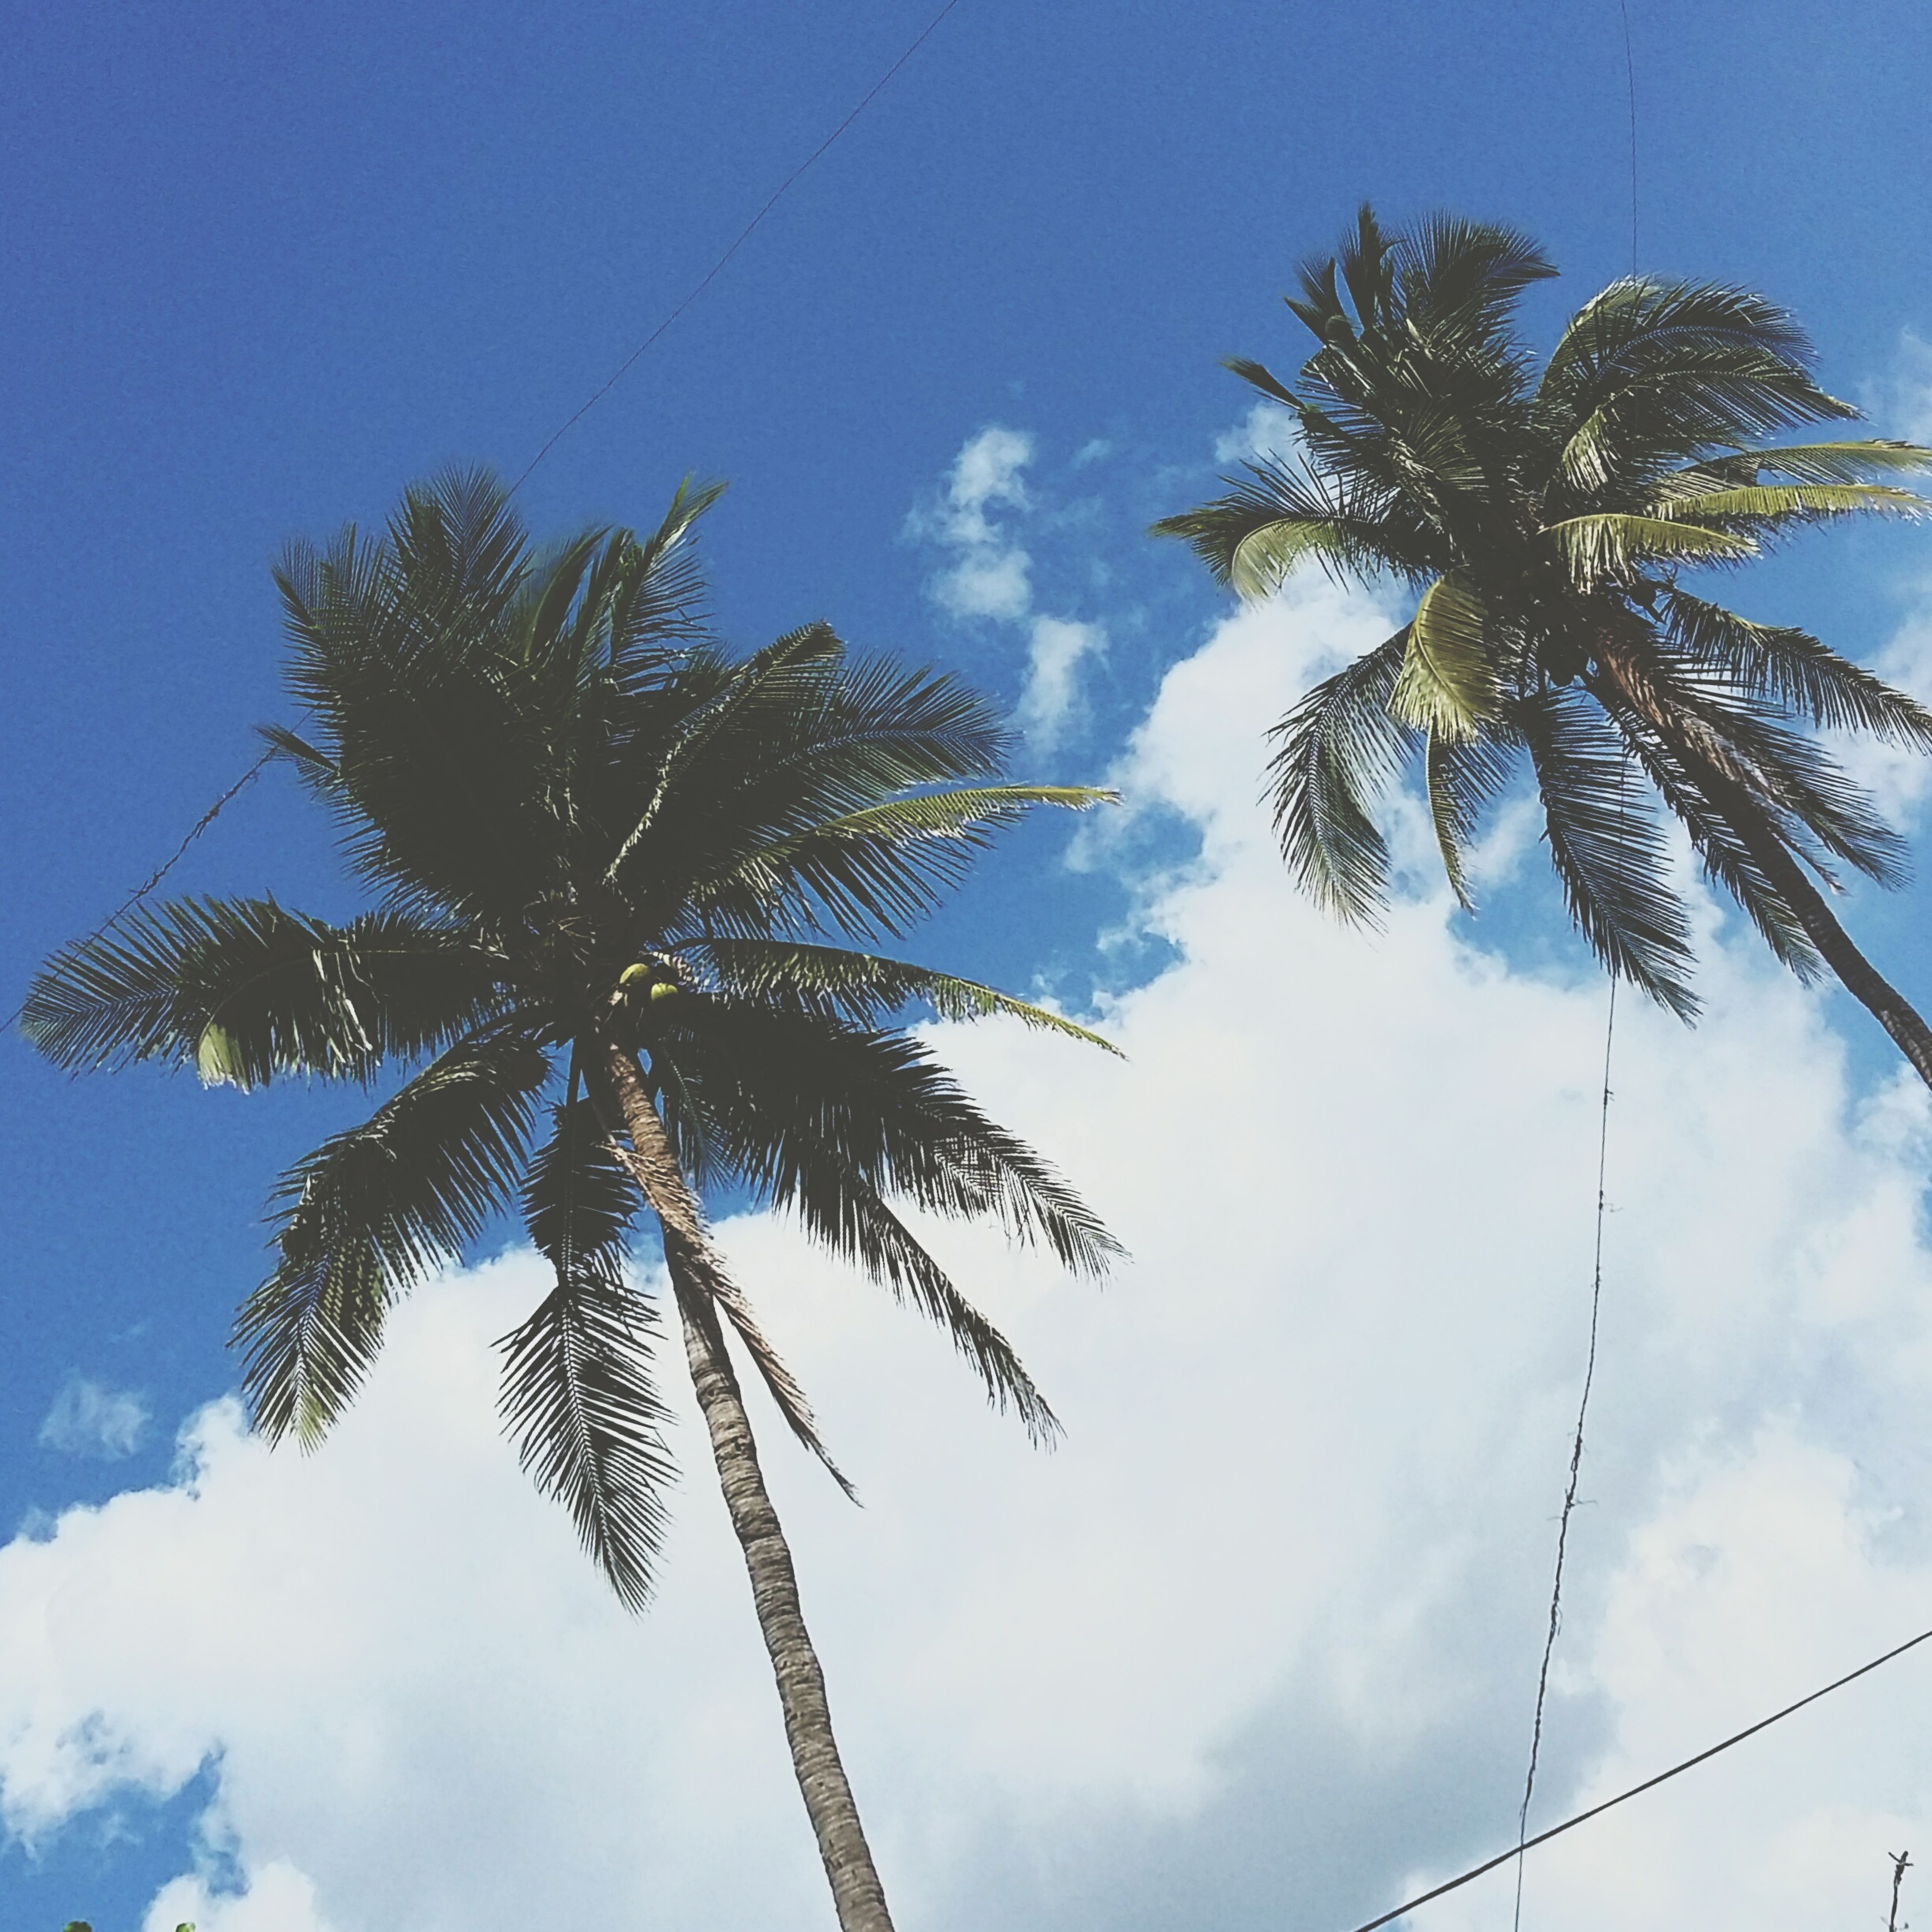 low angle view, tree, sky, palm tree, blue, growth, nature, tranquility, tall - high, beauty in nature, cloud - sky, cloud, tree trunk, day, silhouette, outdoors, no people, scenics, branch, sunlight